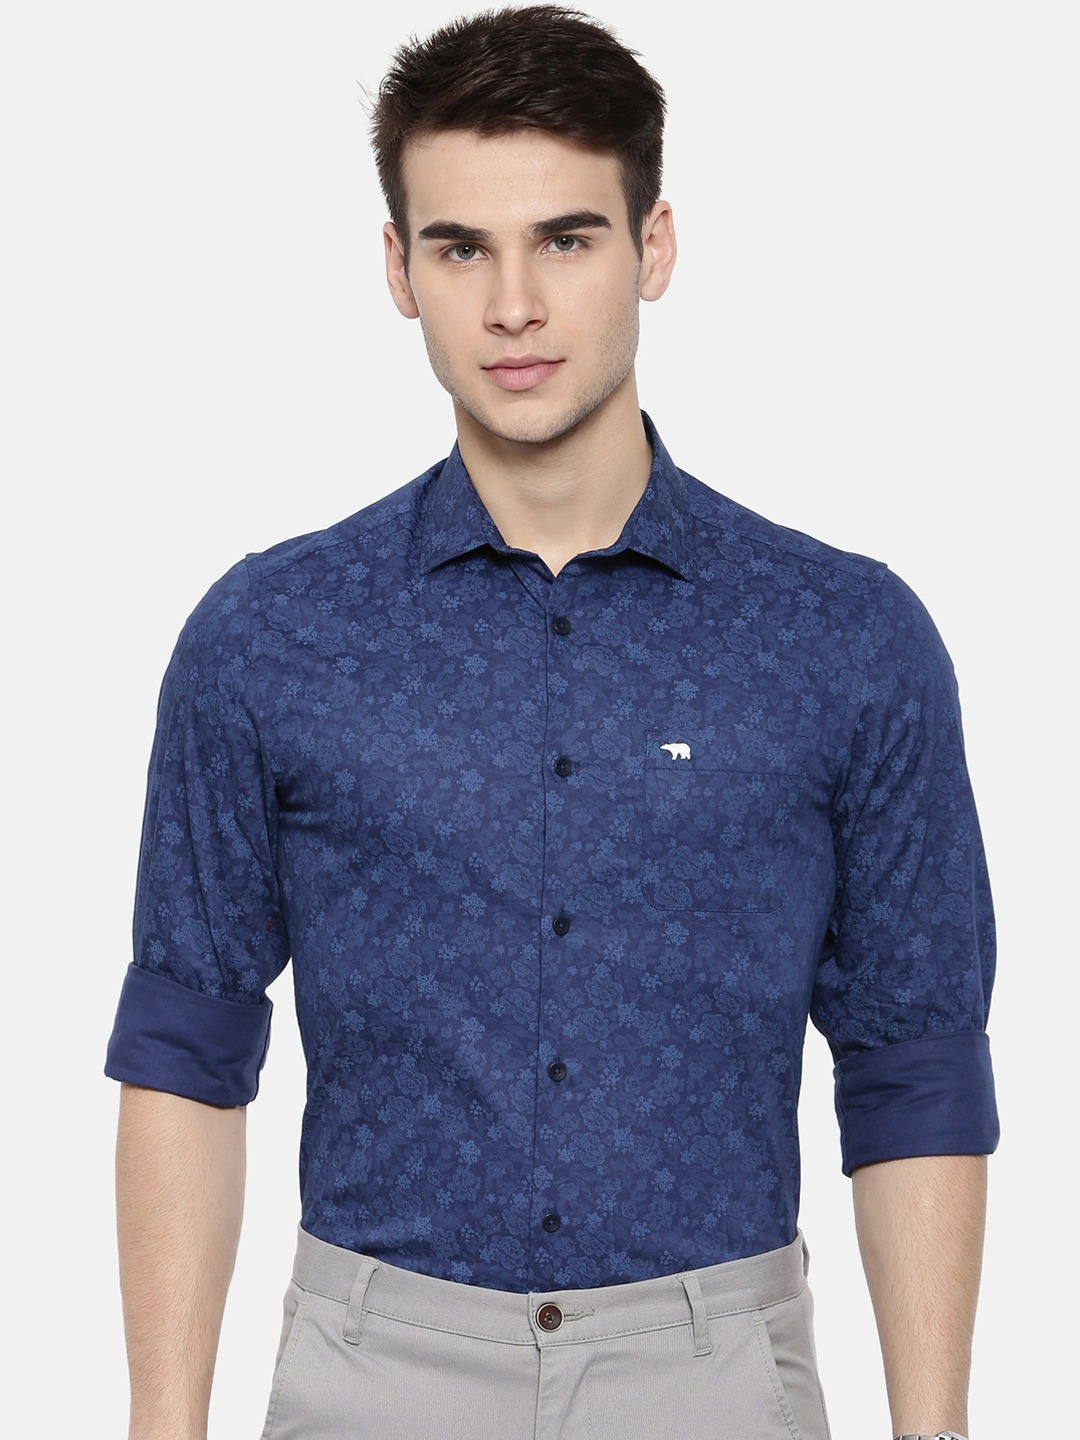 The Bear House   TBH CLASSIC FORMAL SHIRT WITH SIDE PANELS.